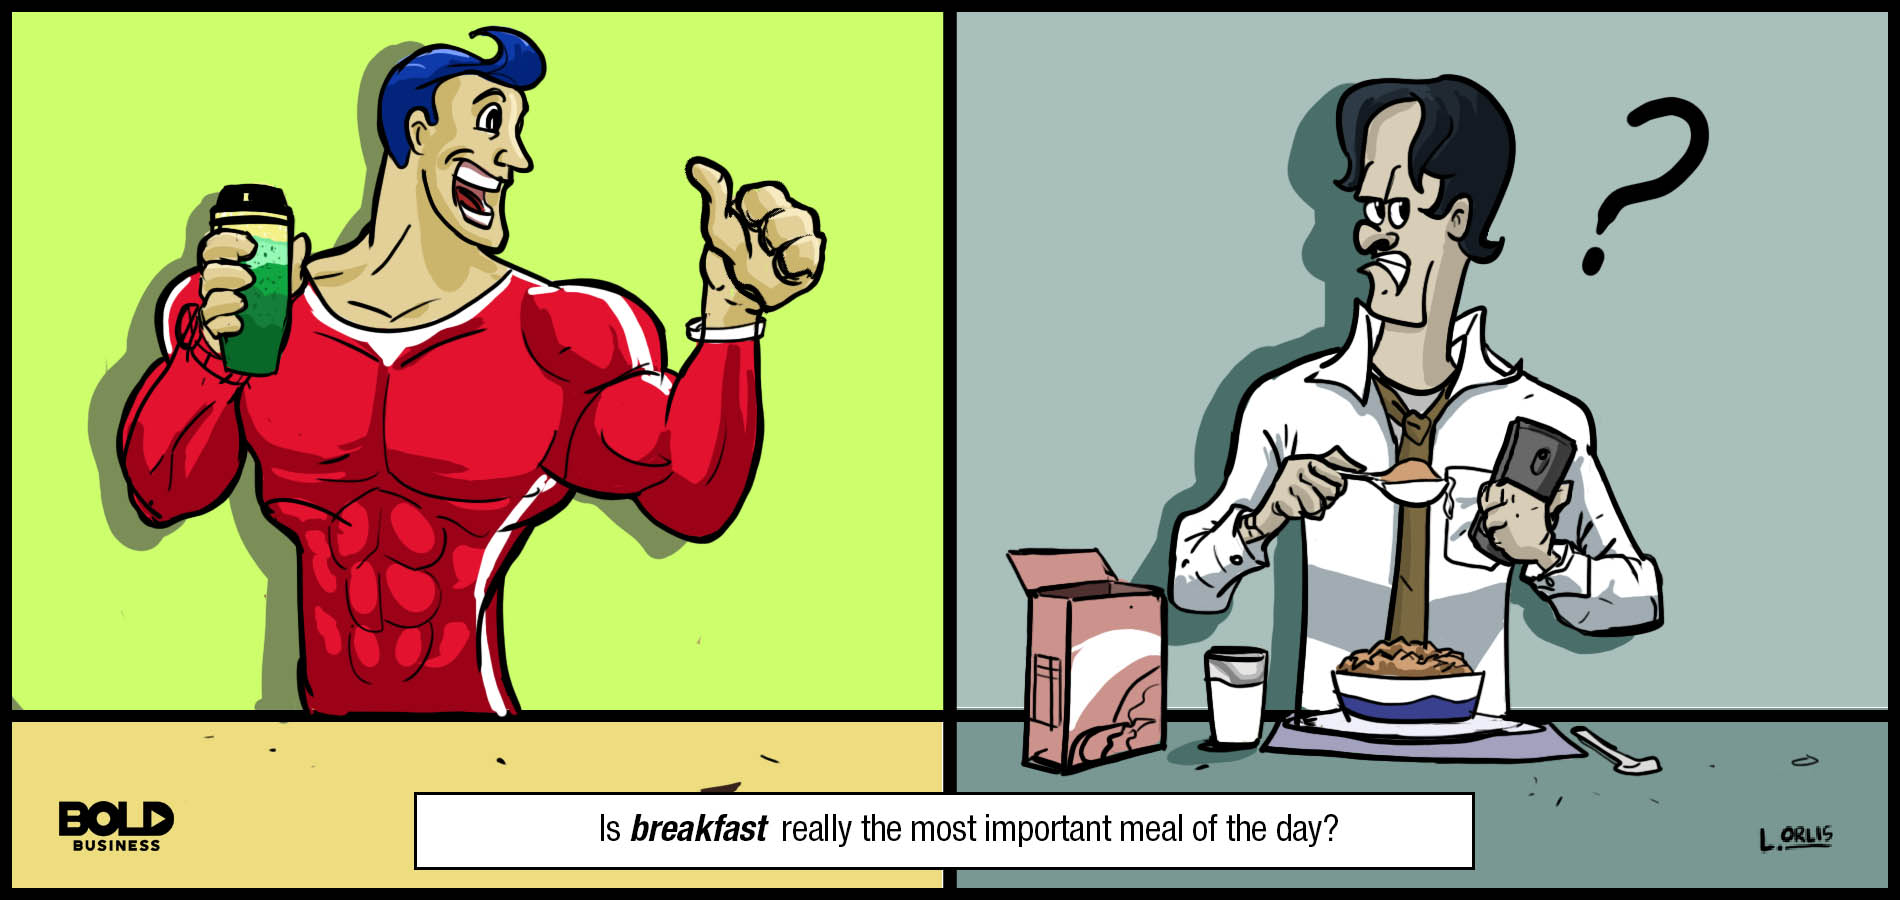 a cartoon of two men arguing about breakfast as the most important meal of the day